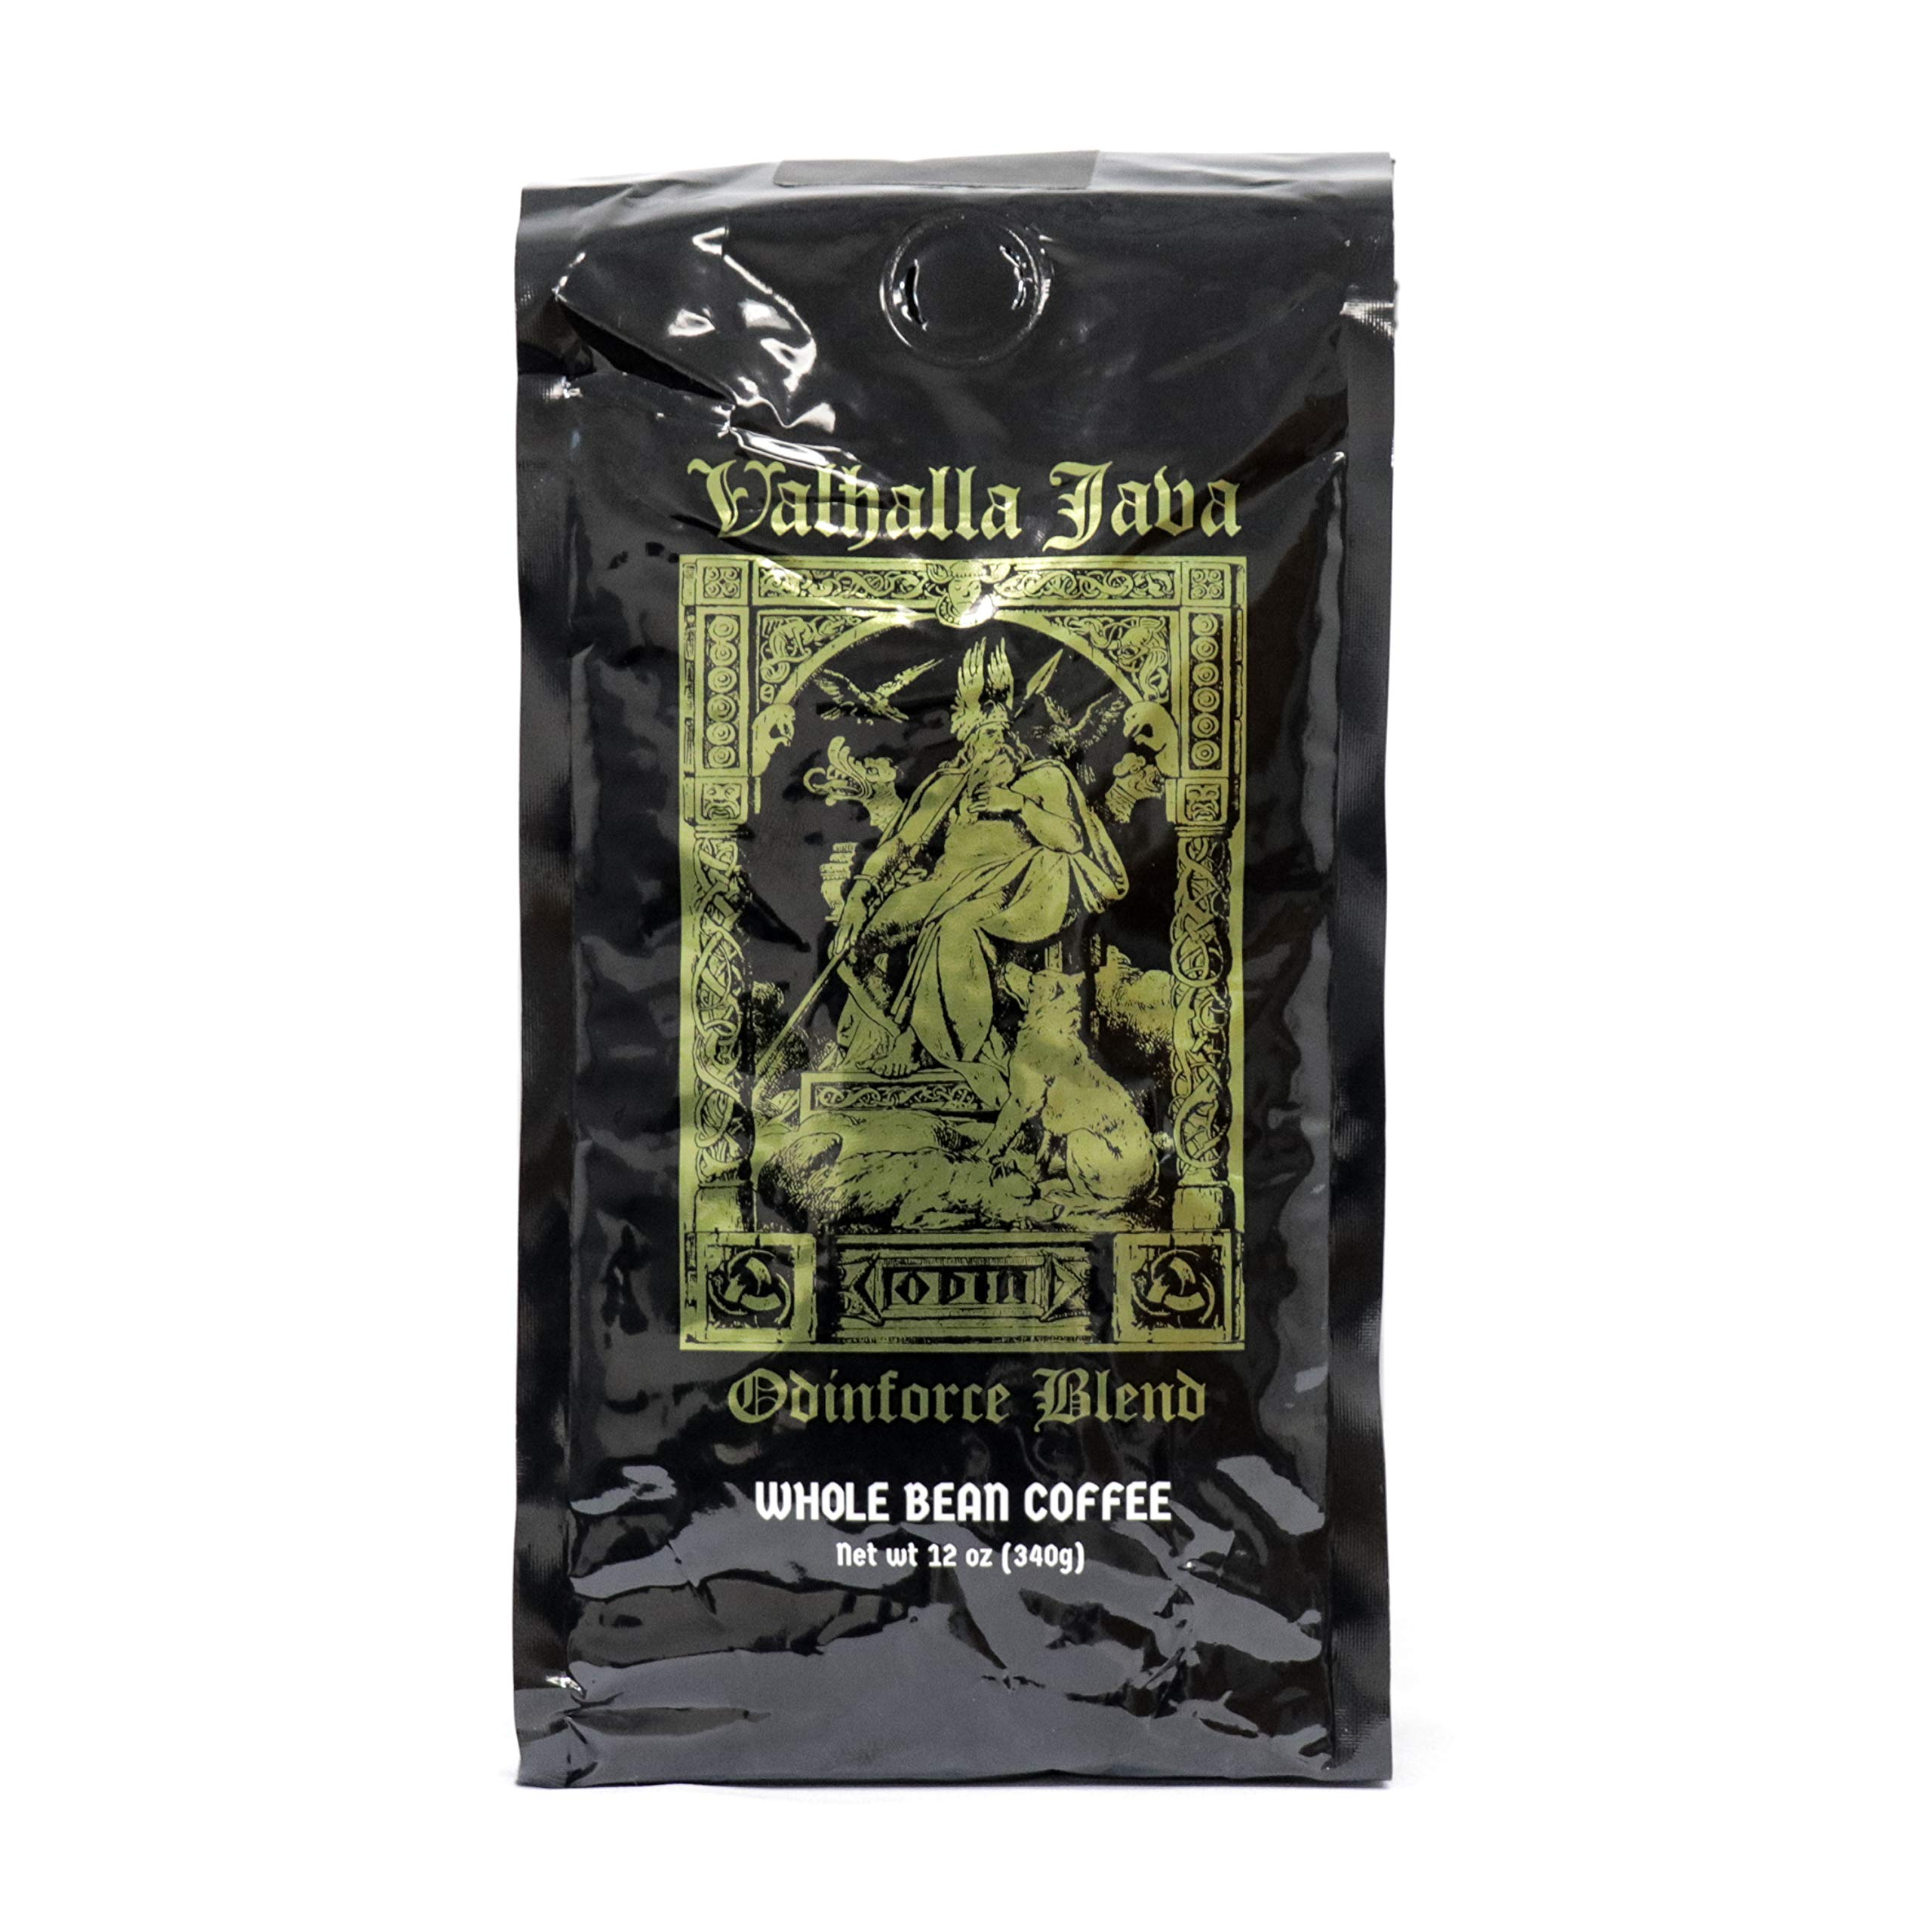 Valhalla Java Whole Bean Coffee by Death Wish Coffee Company, Fair Trade and USDA Certified Organic - 12 Ounce Bag by Death Wish Coffee Co.